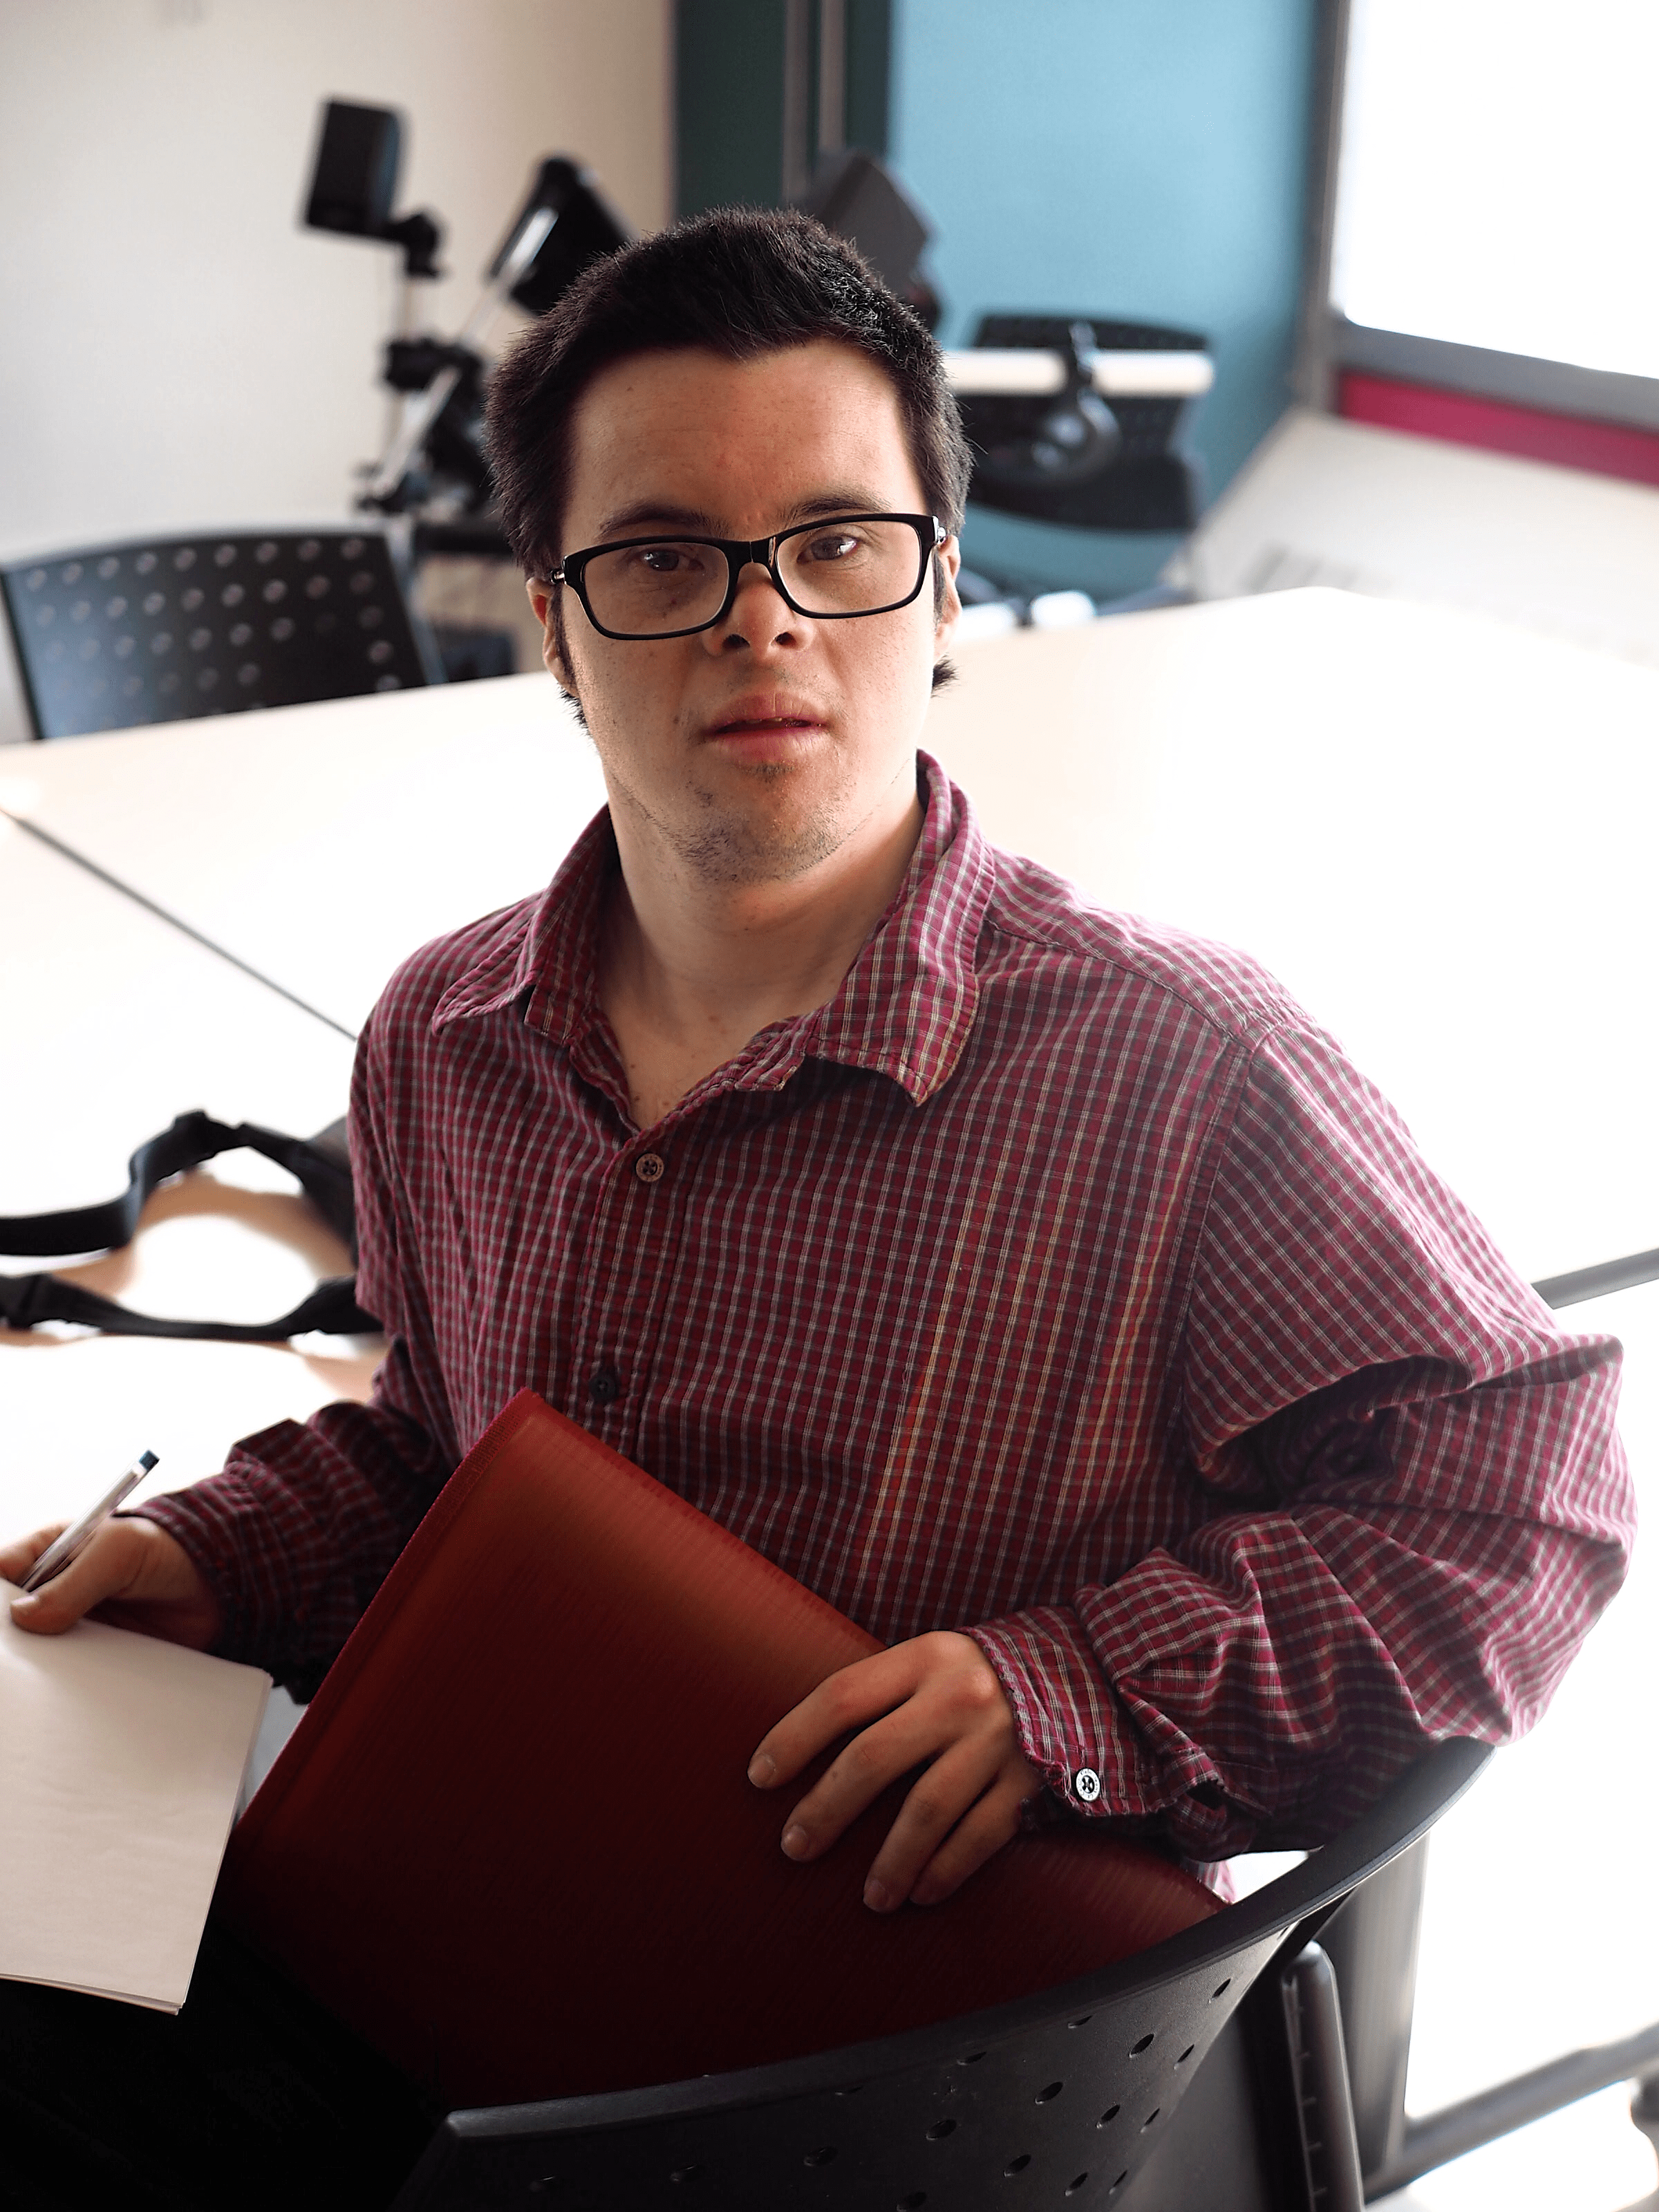 A man wearing glasses is looking at the camera. He is holding a binder.